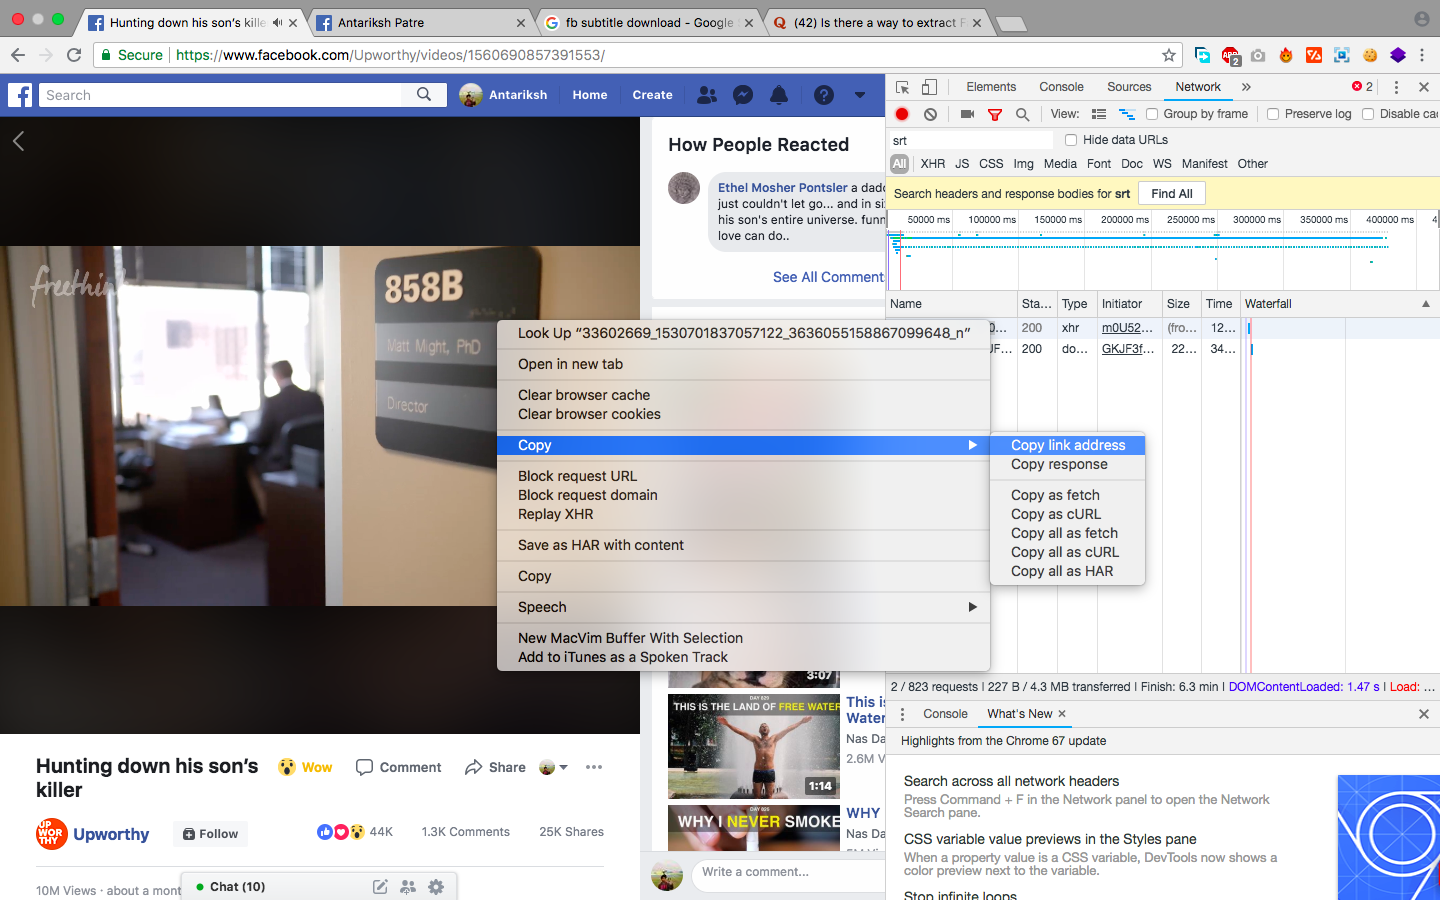 Is there a way to extract Facebook subtitles from a Video? - Quora